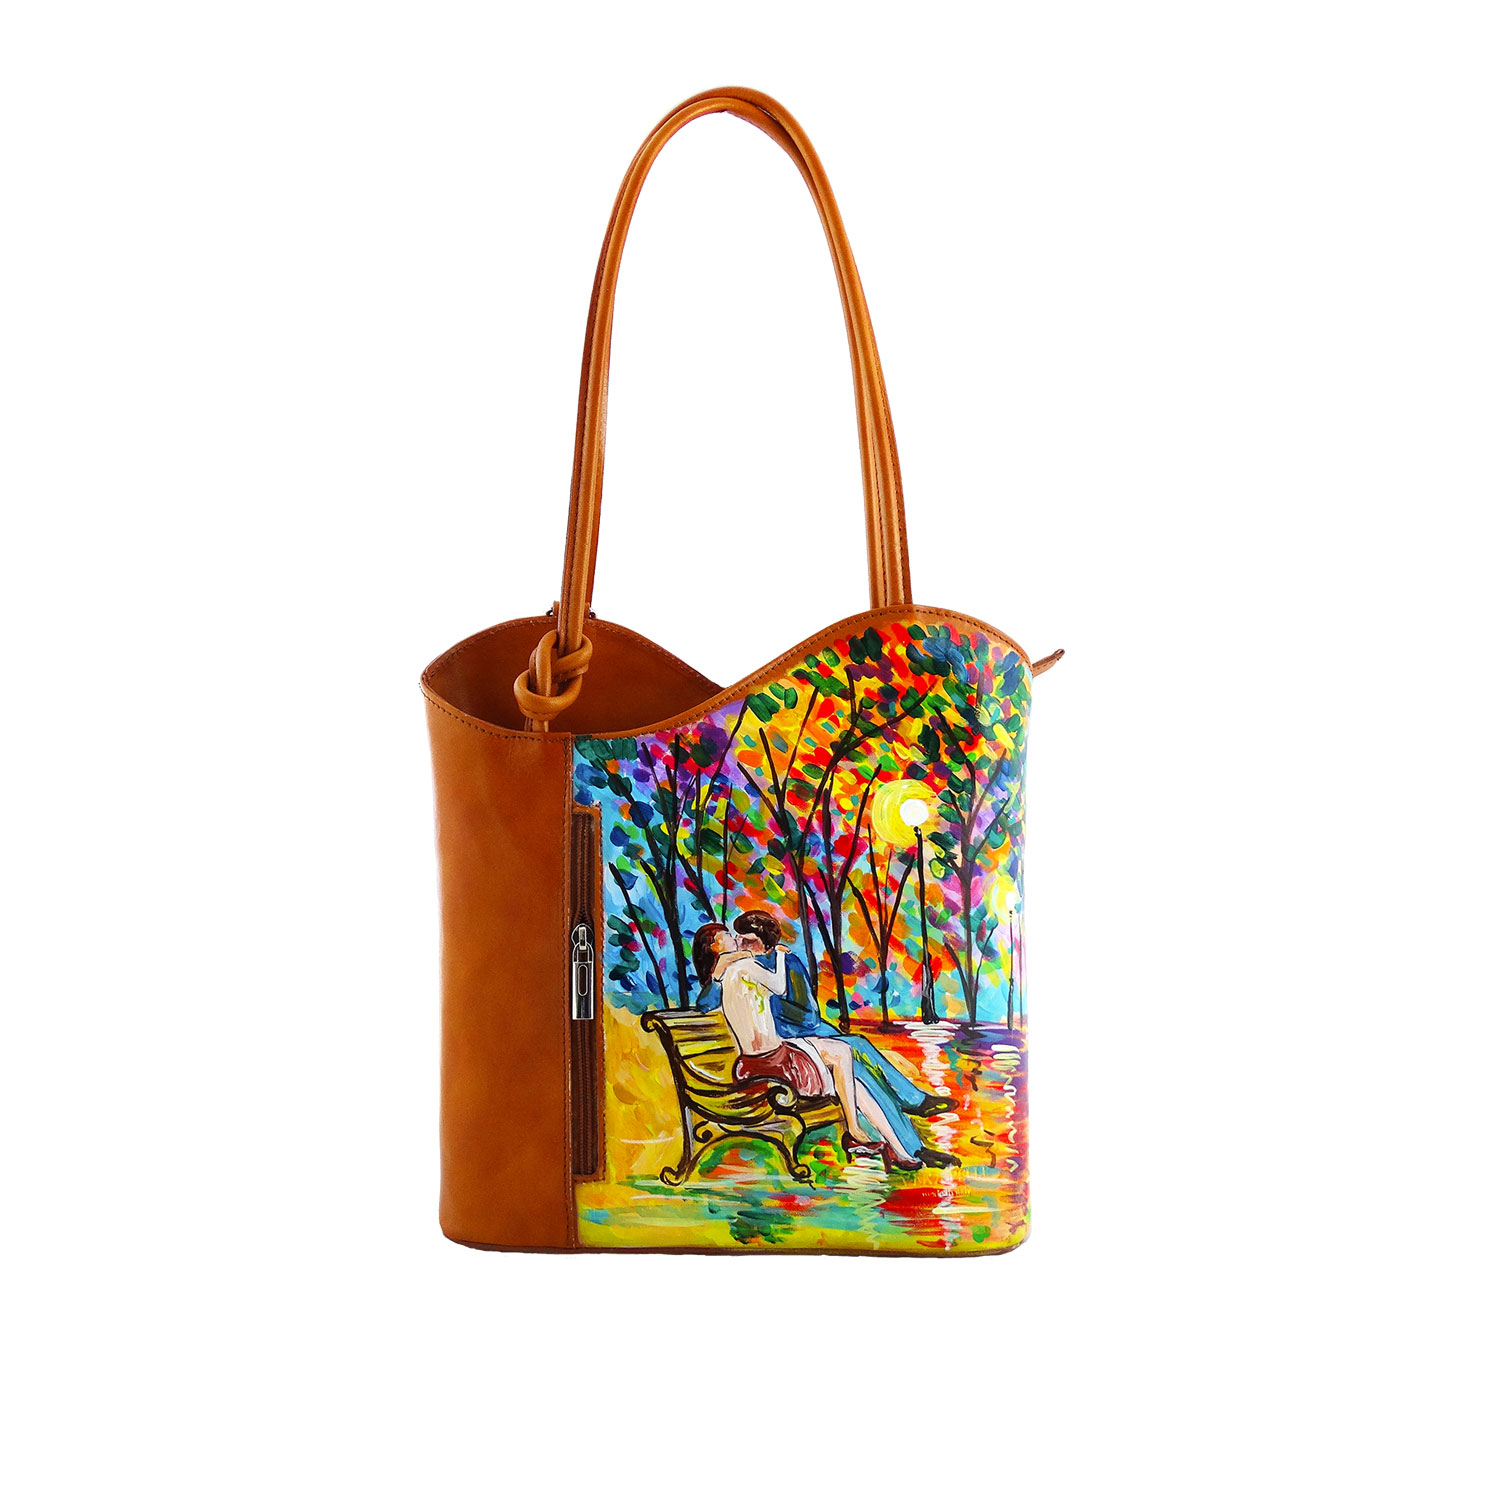 Hand painted bag - Tribute to love by Leonid Afremov